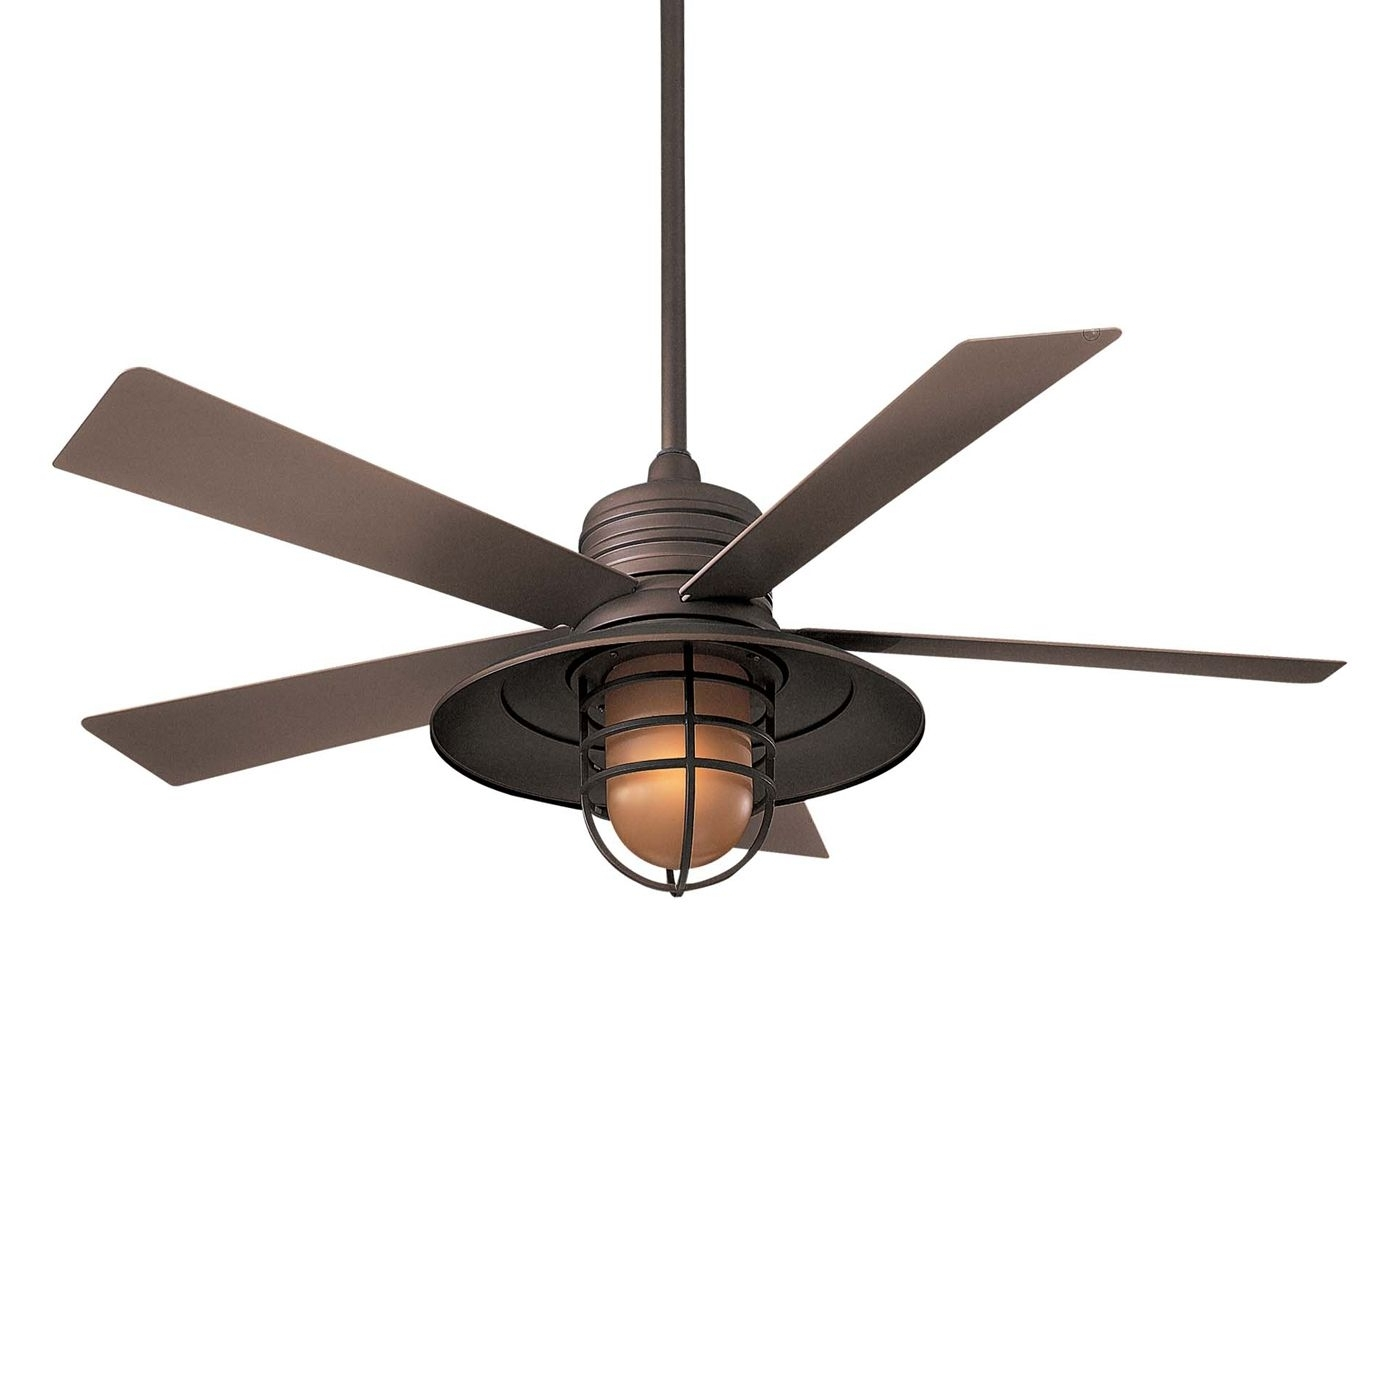 Best And Newest Minka Aire F582 54 In Rainman™ Indoor/outdoor Ceiling Fan At Atg Throughout Minka Outdoor Ceiling Fans With Lights (View 2 of 20)